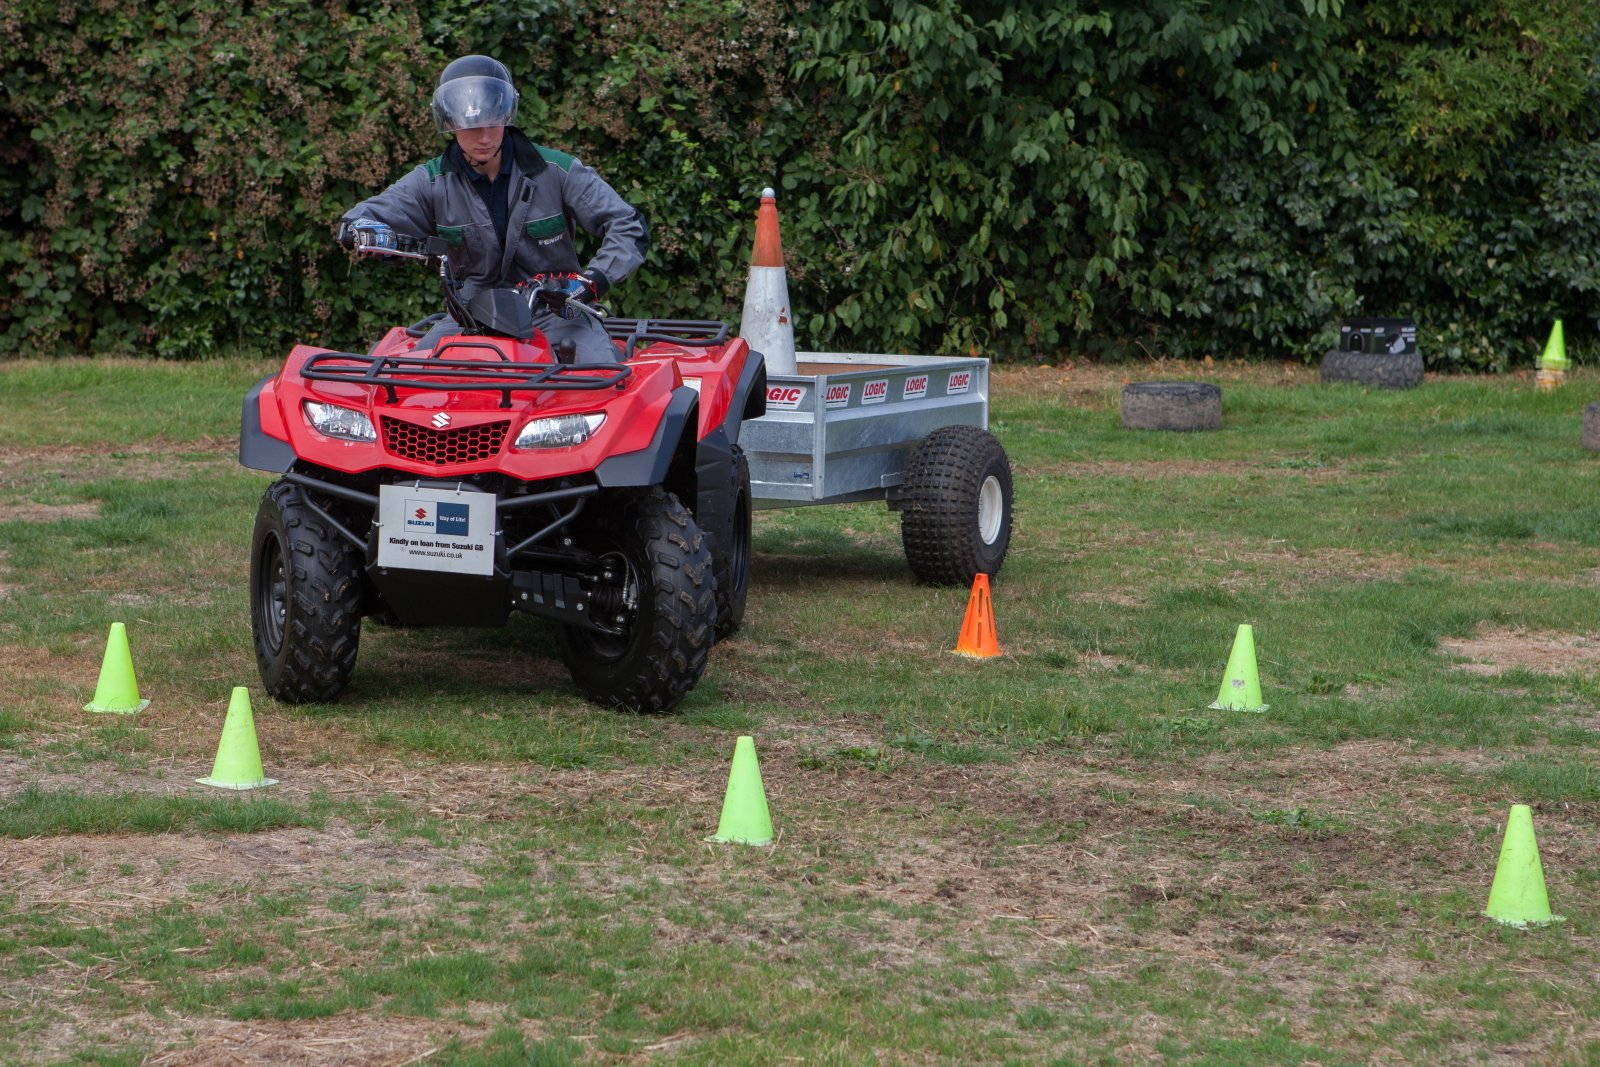 Competitors in the Young Shepherd of the Year competition being judged on their ATV handling skills